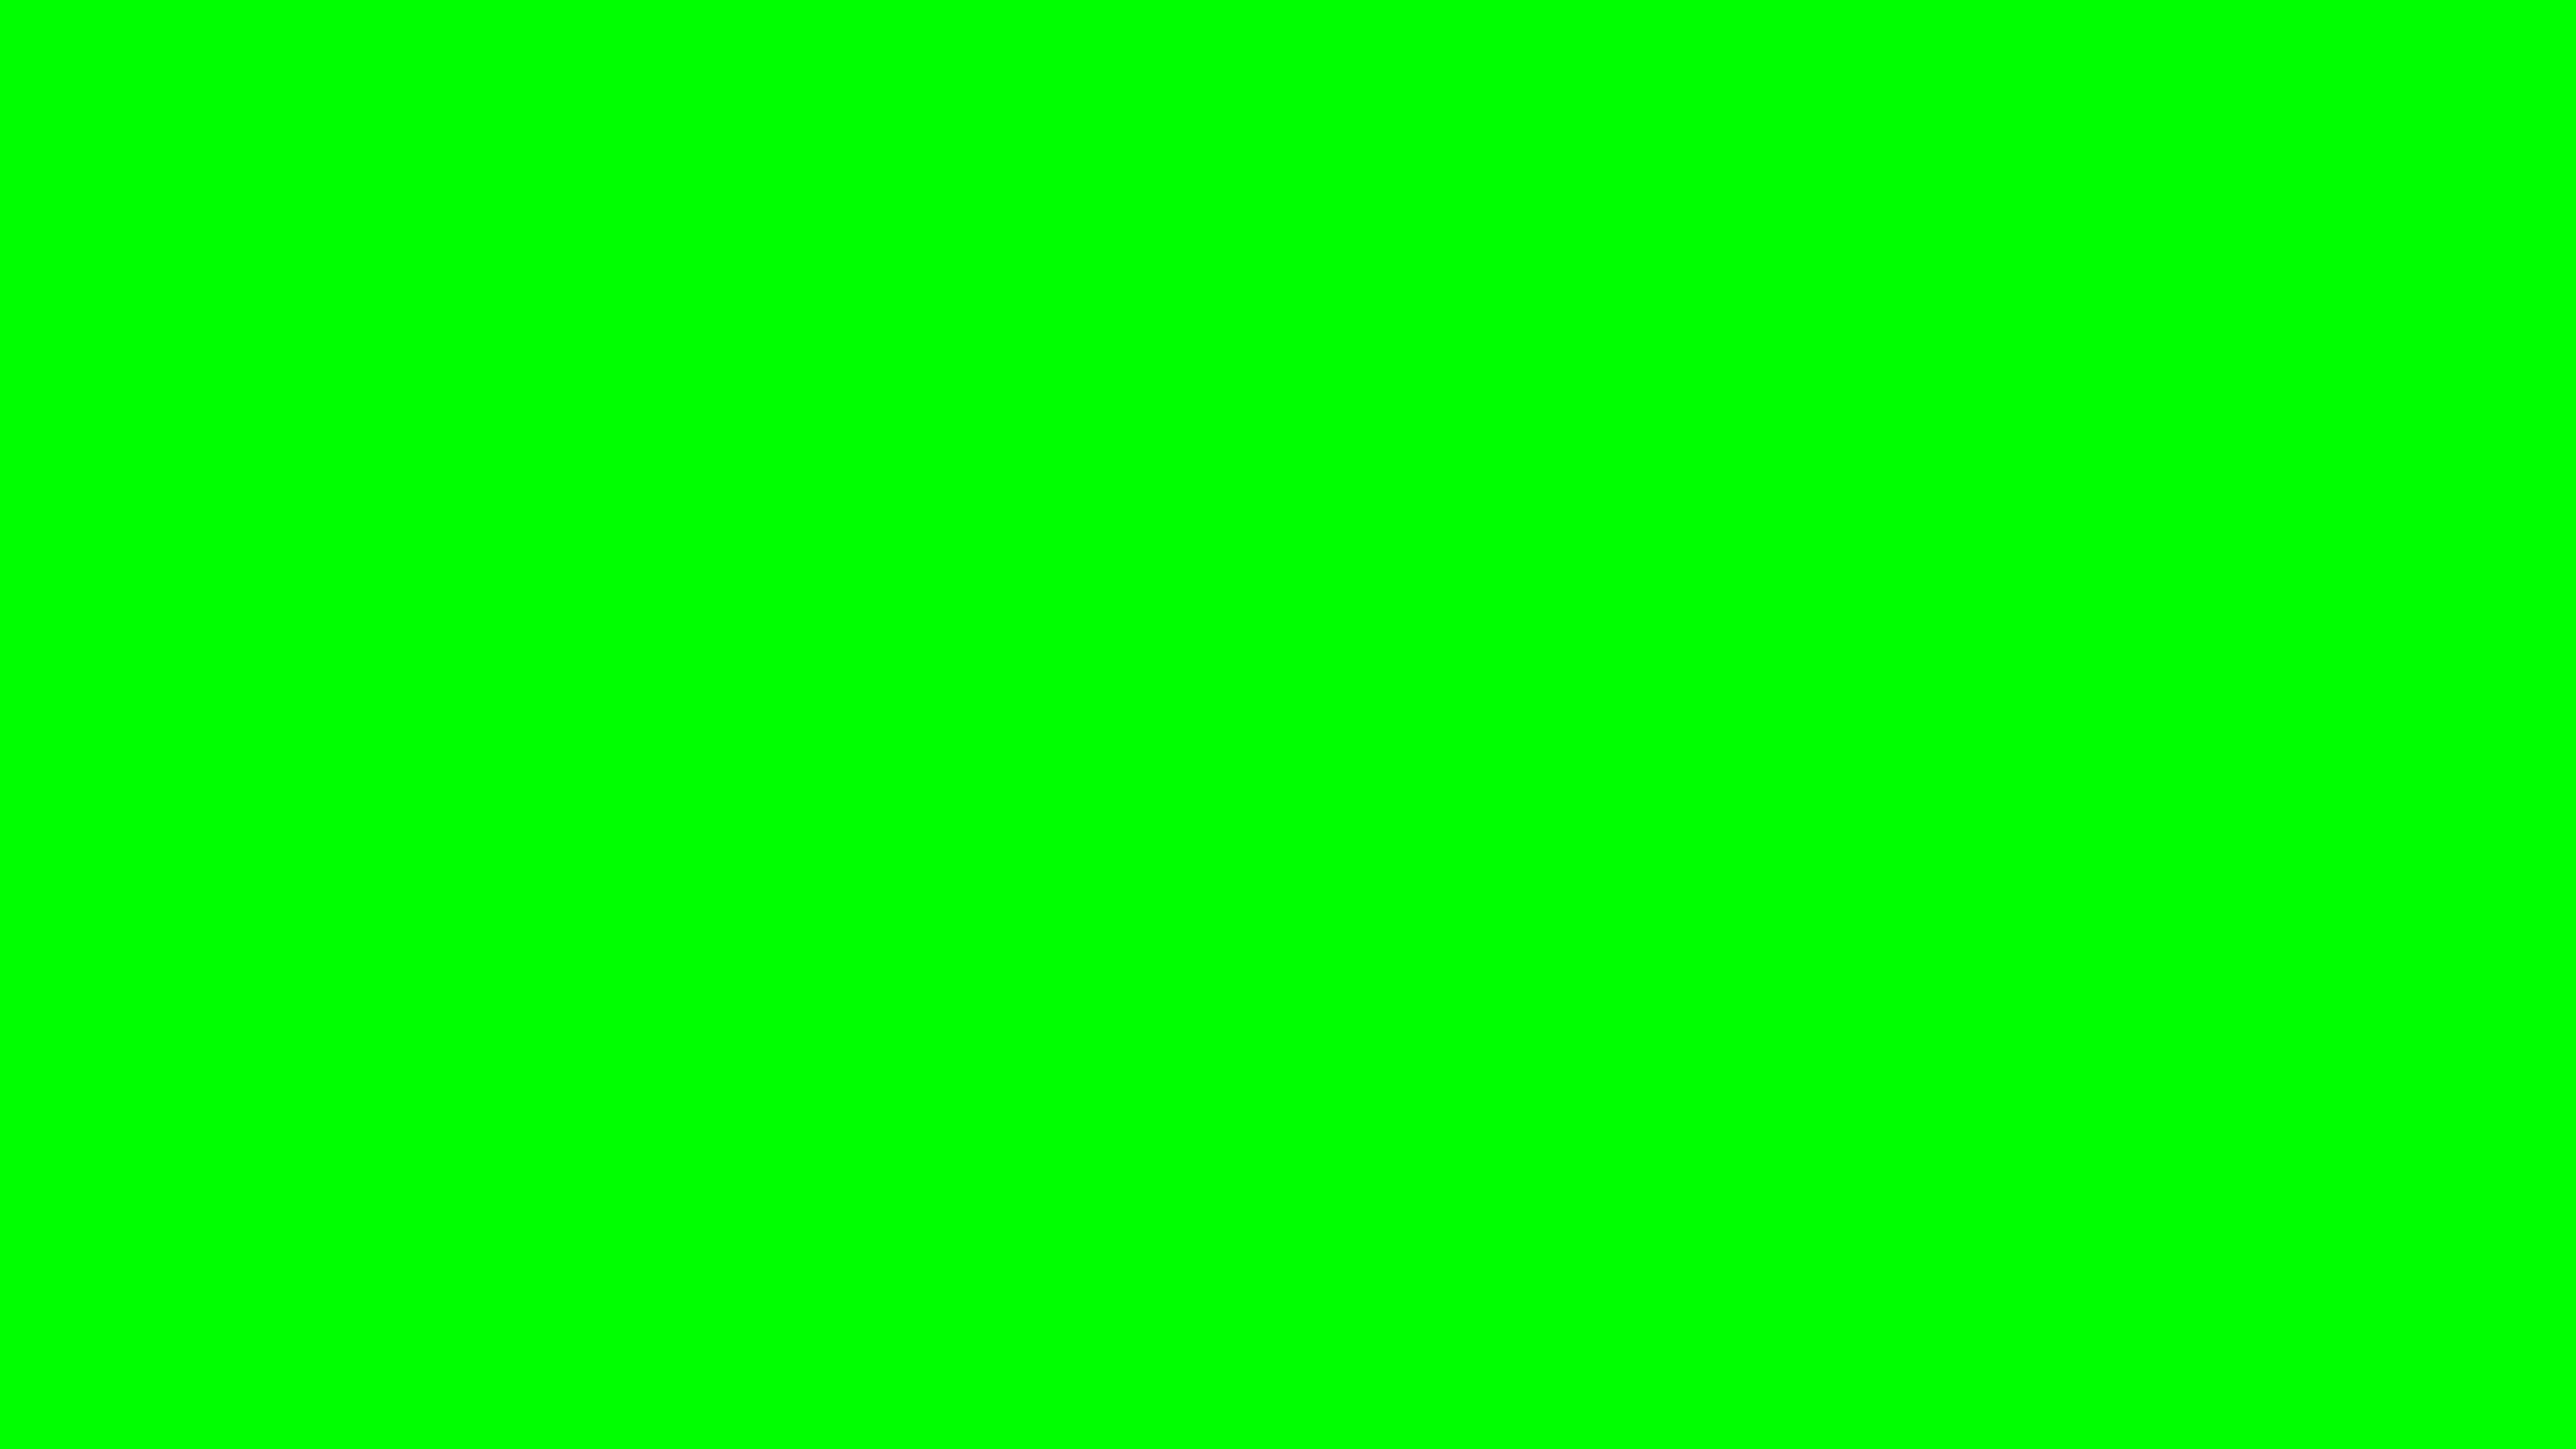 7680x4320 Lime Web Green Solid Color Background